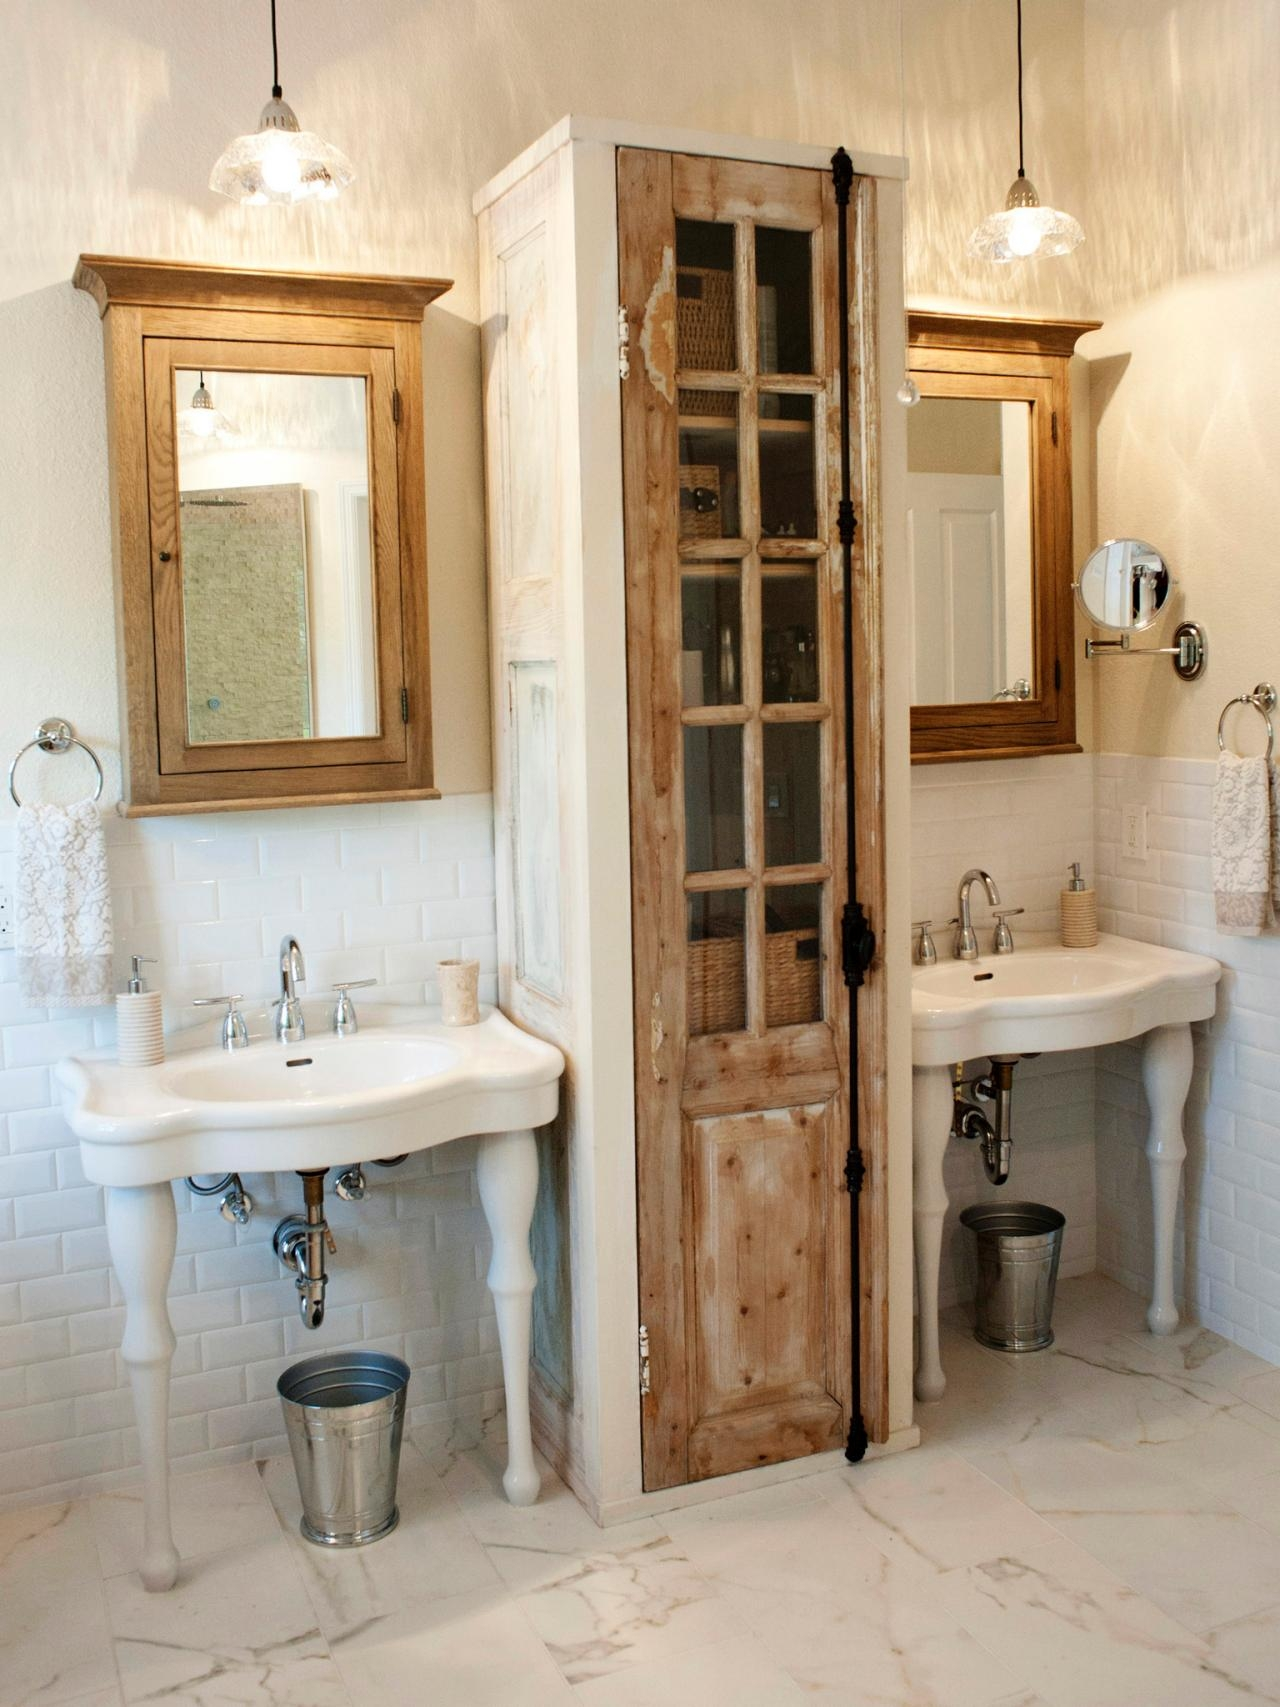 Winsome French Bathroom Mirror With Shelf Picture Exterior With For French Bathroom Mirror (Image 15 of 15)